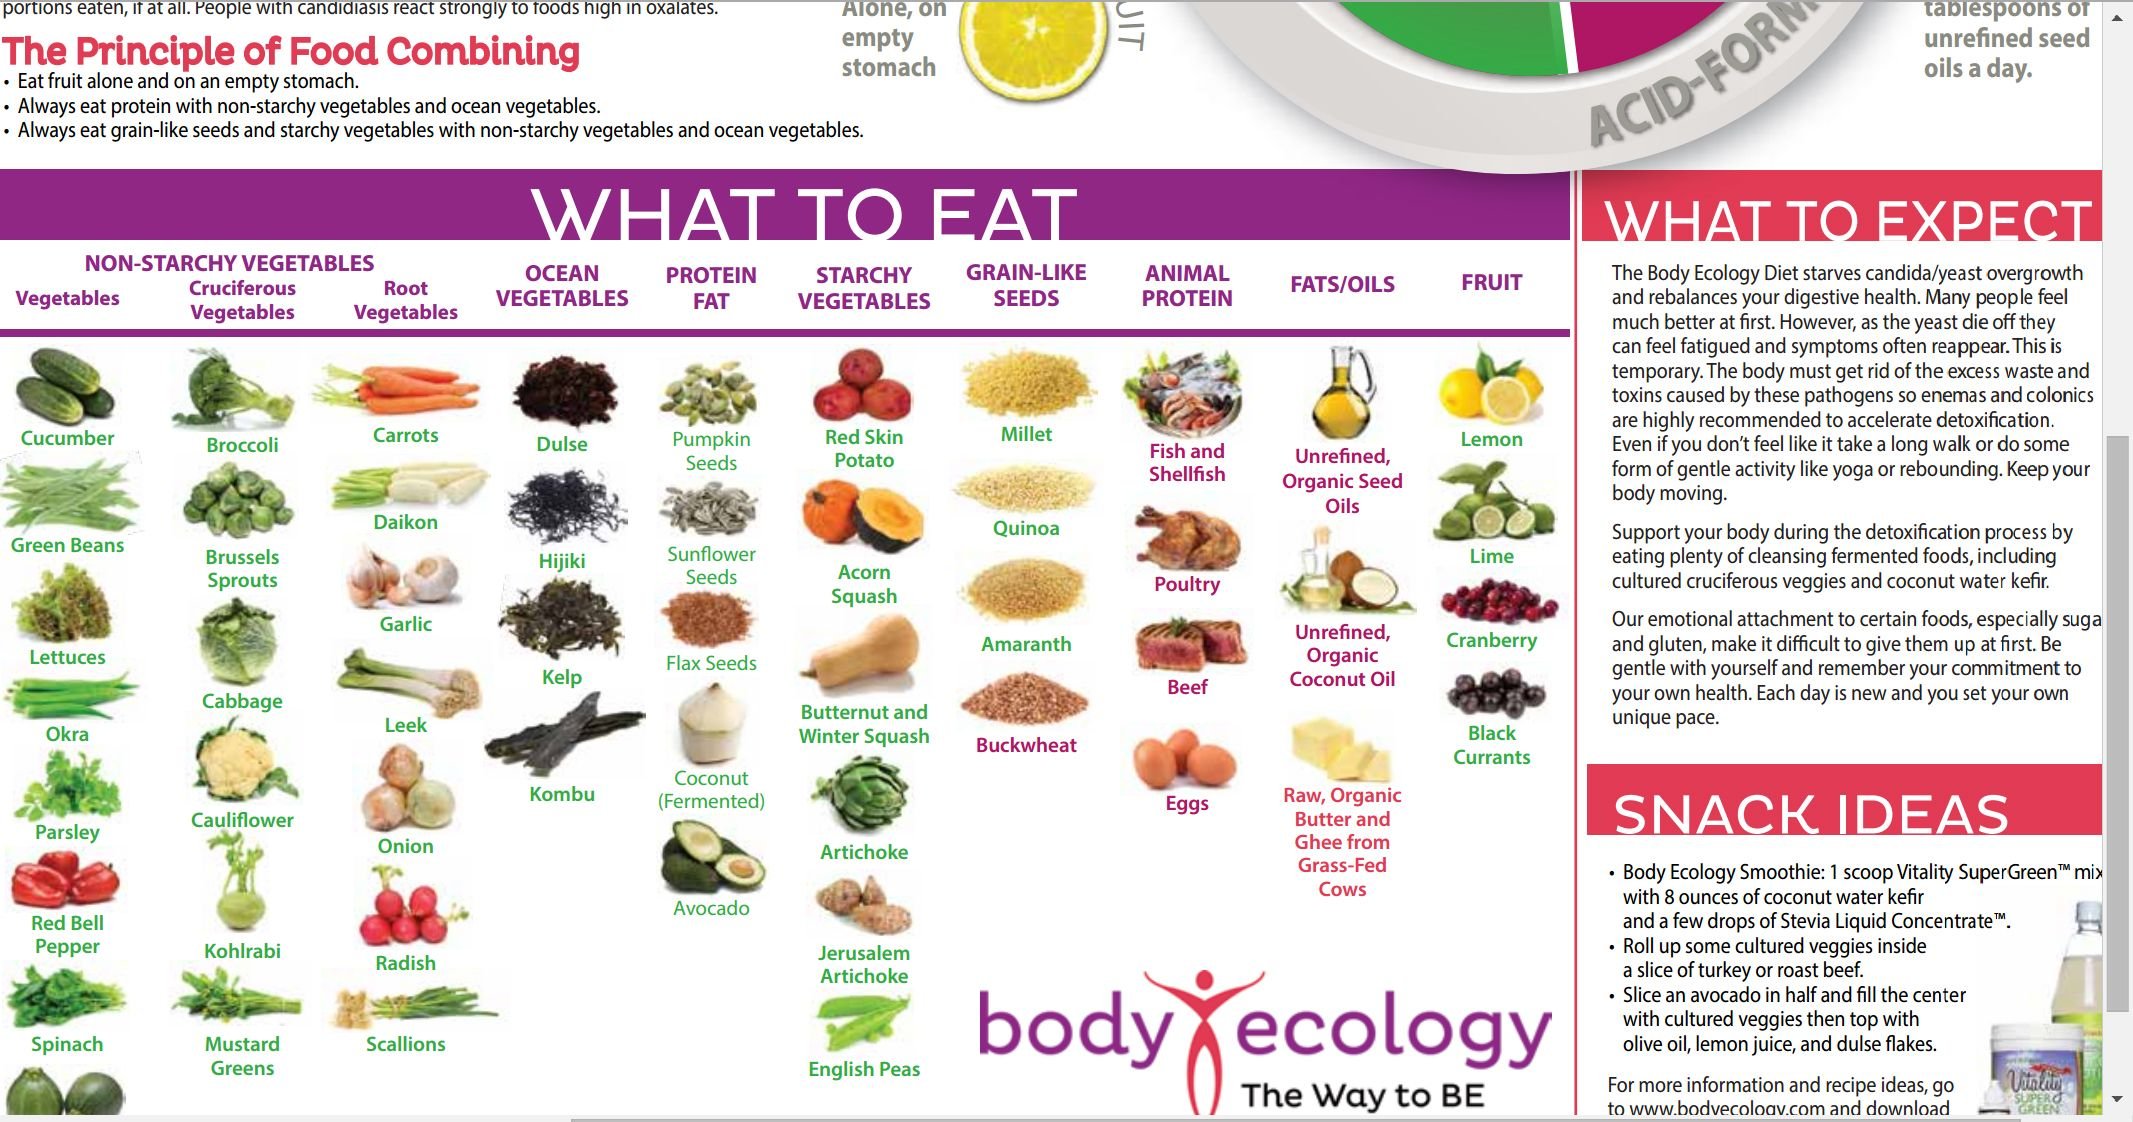 food combining on candida diet